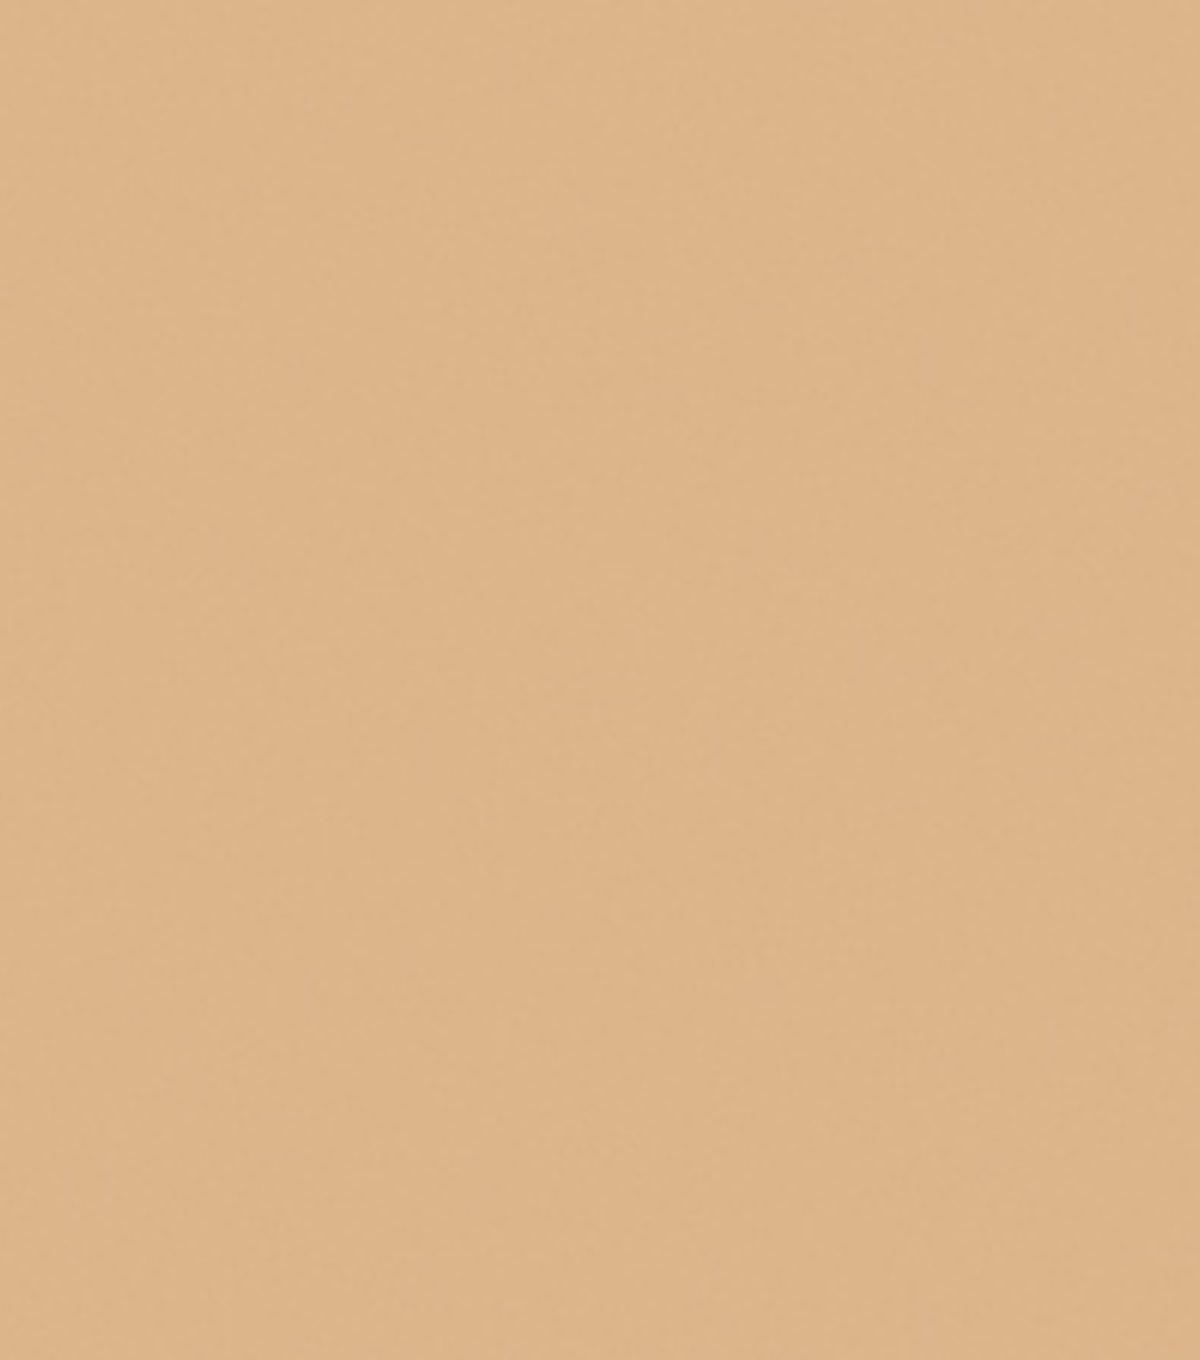 Delta Ceramcoat Acrylic Paint 2 oz, Trail Tan